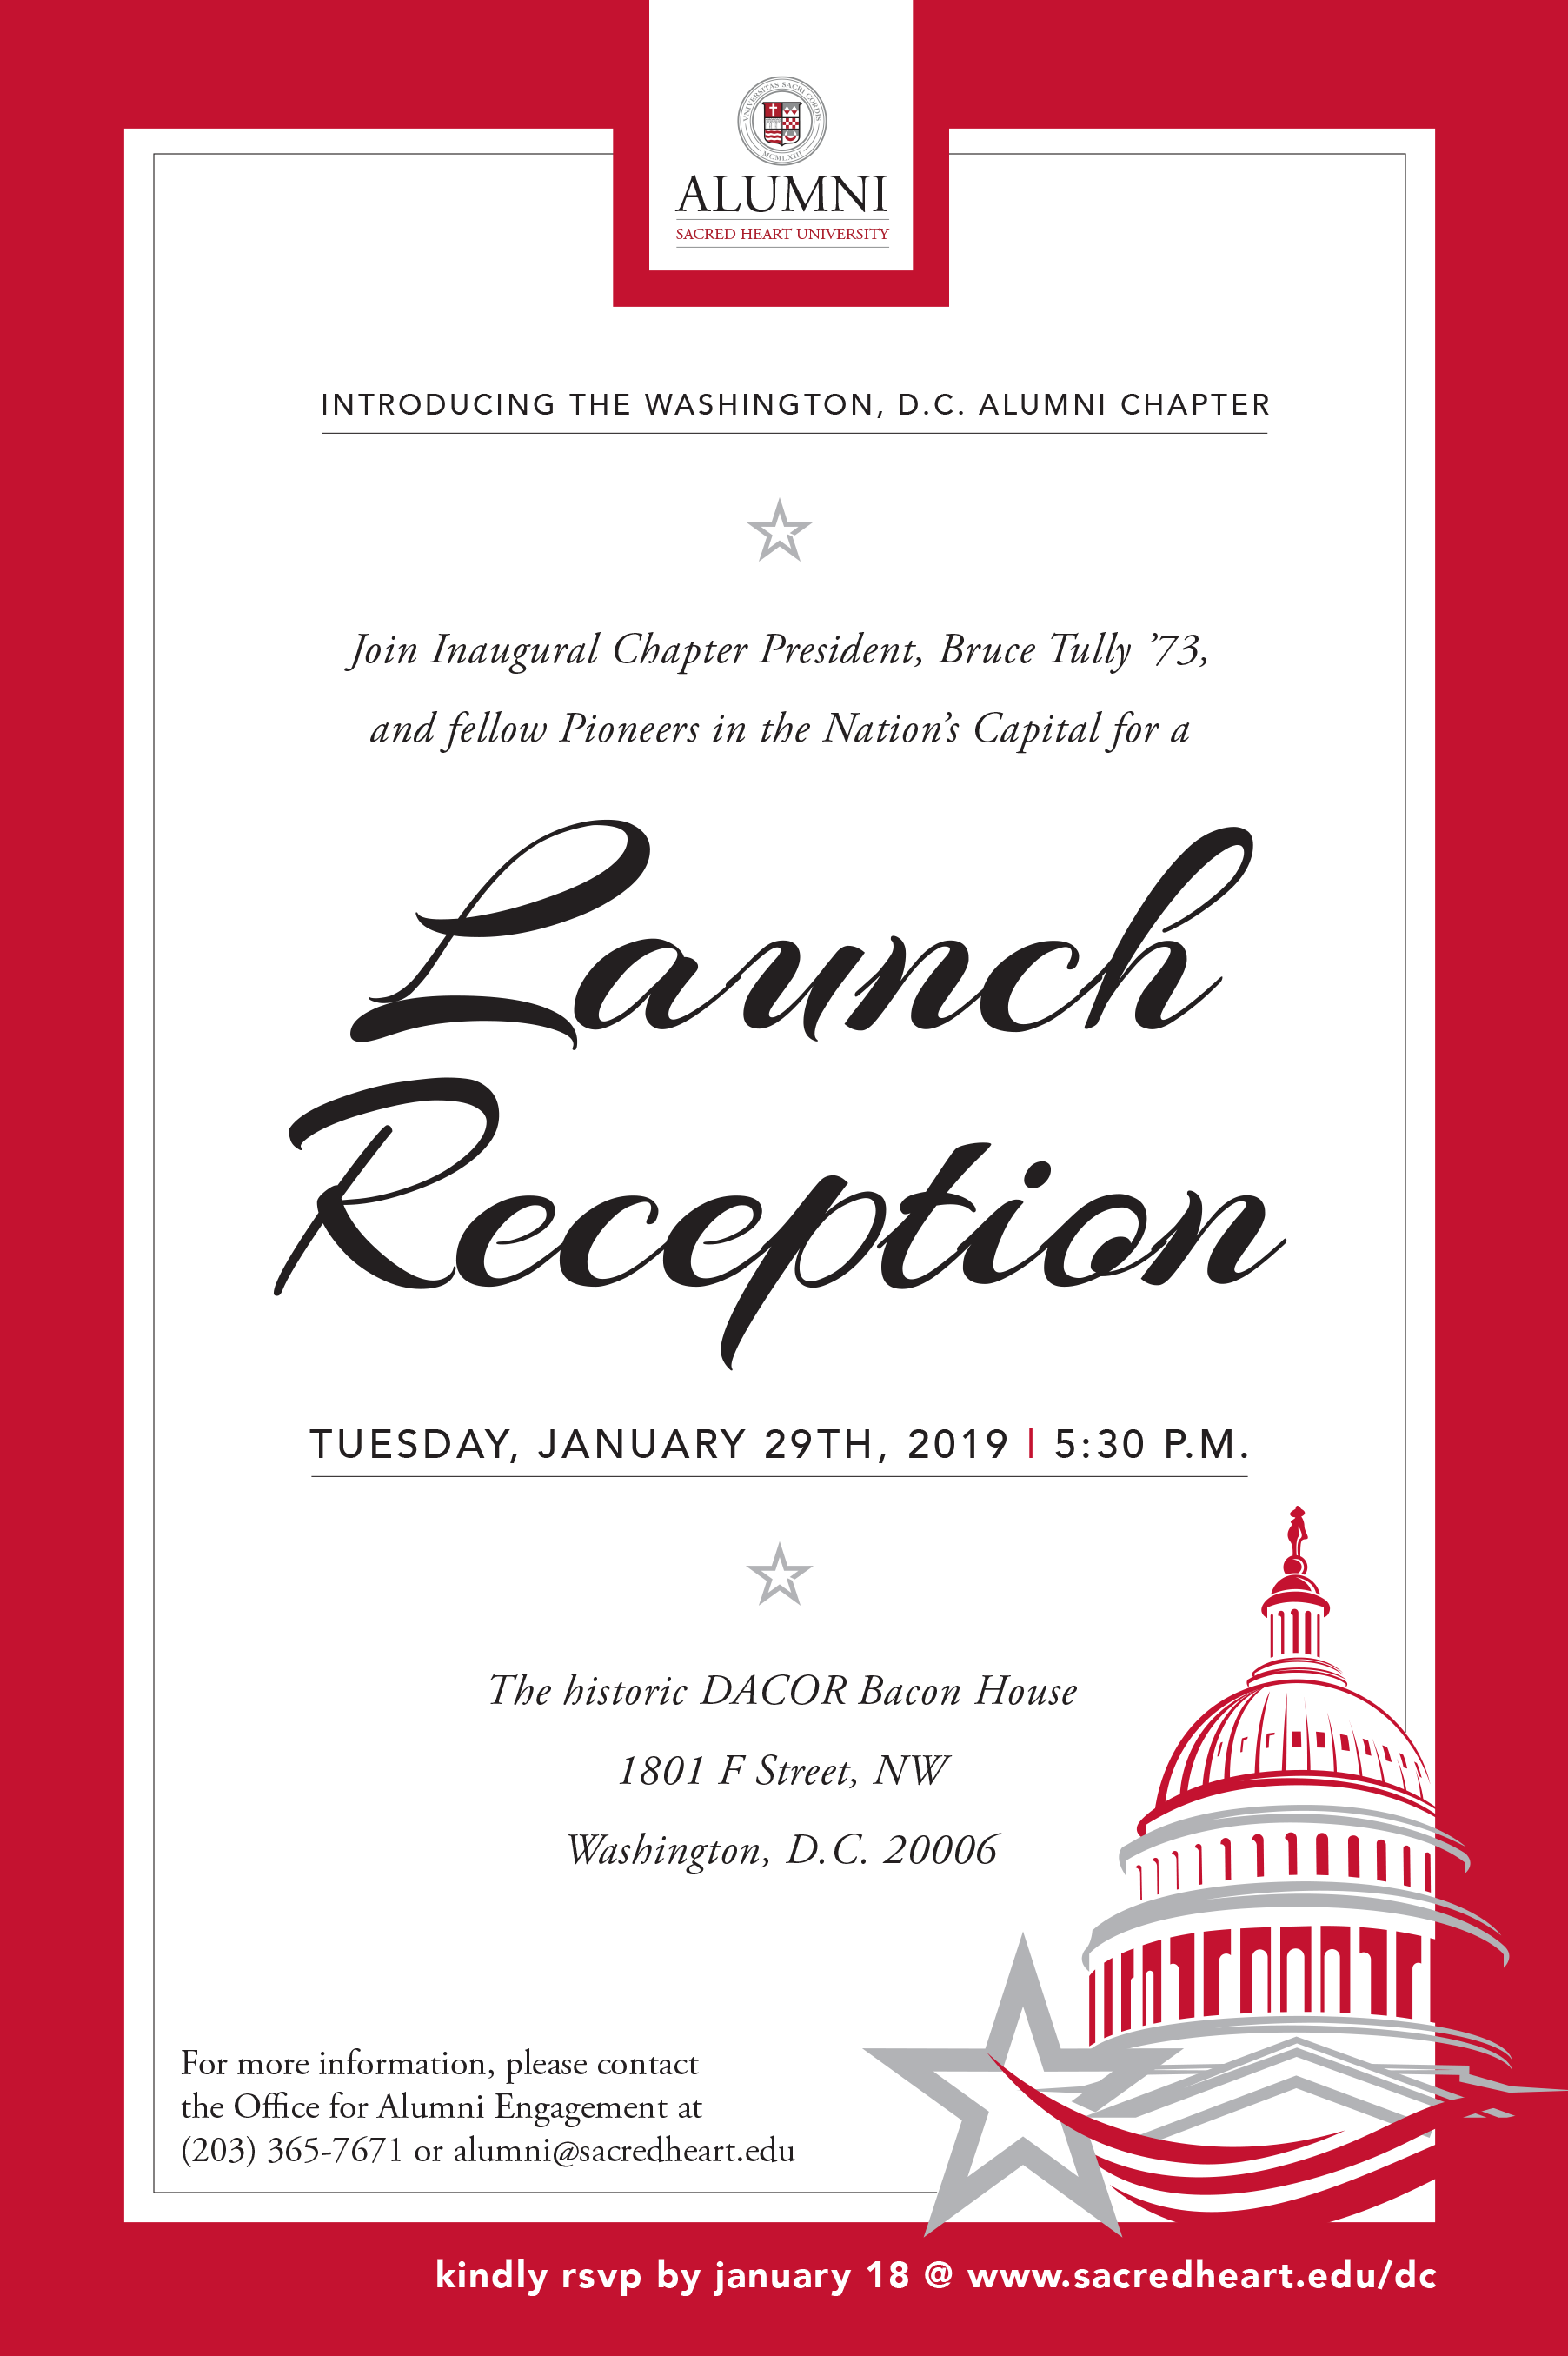 You're Invited to DC event